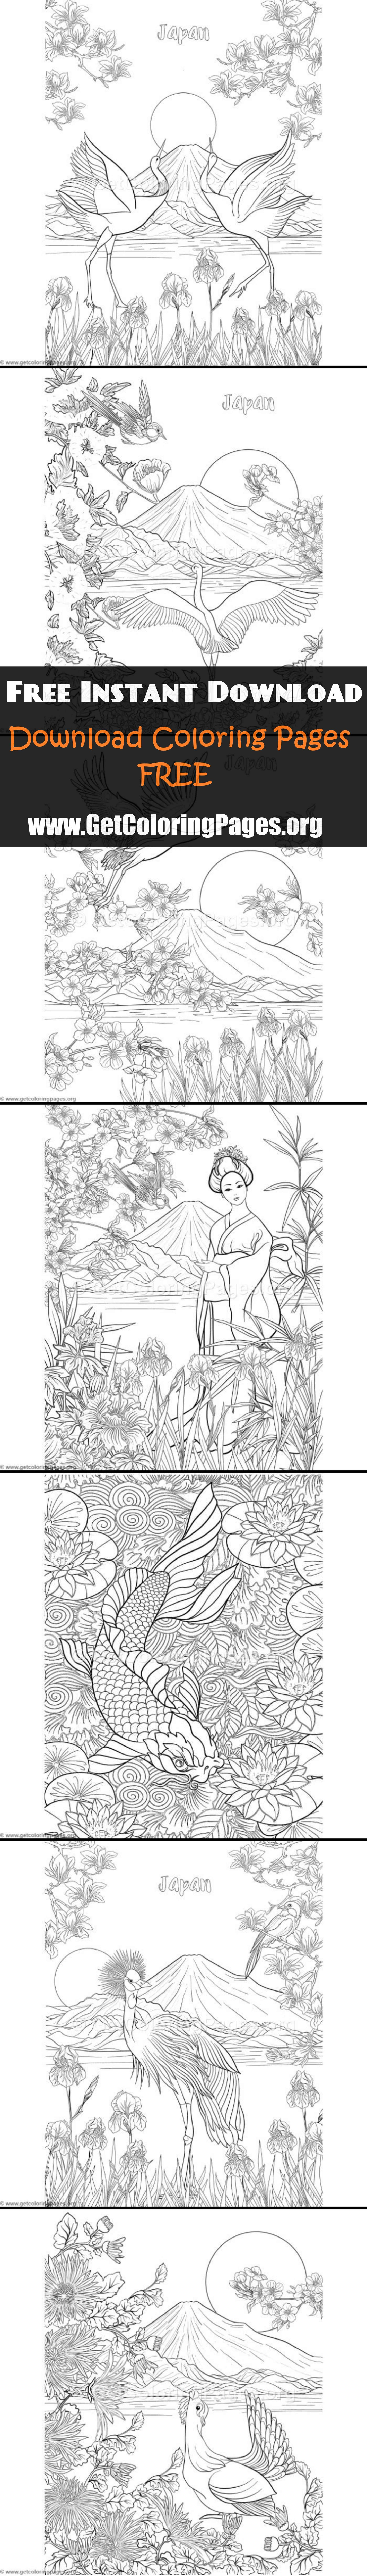 Japanese Painting Coloring Pages Japanese Coloring Pages For Adults